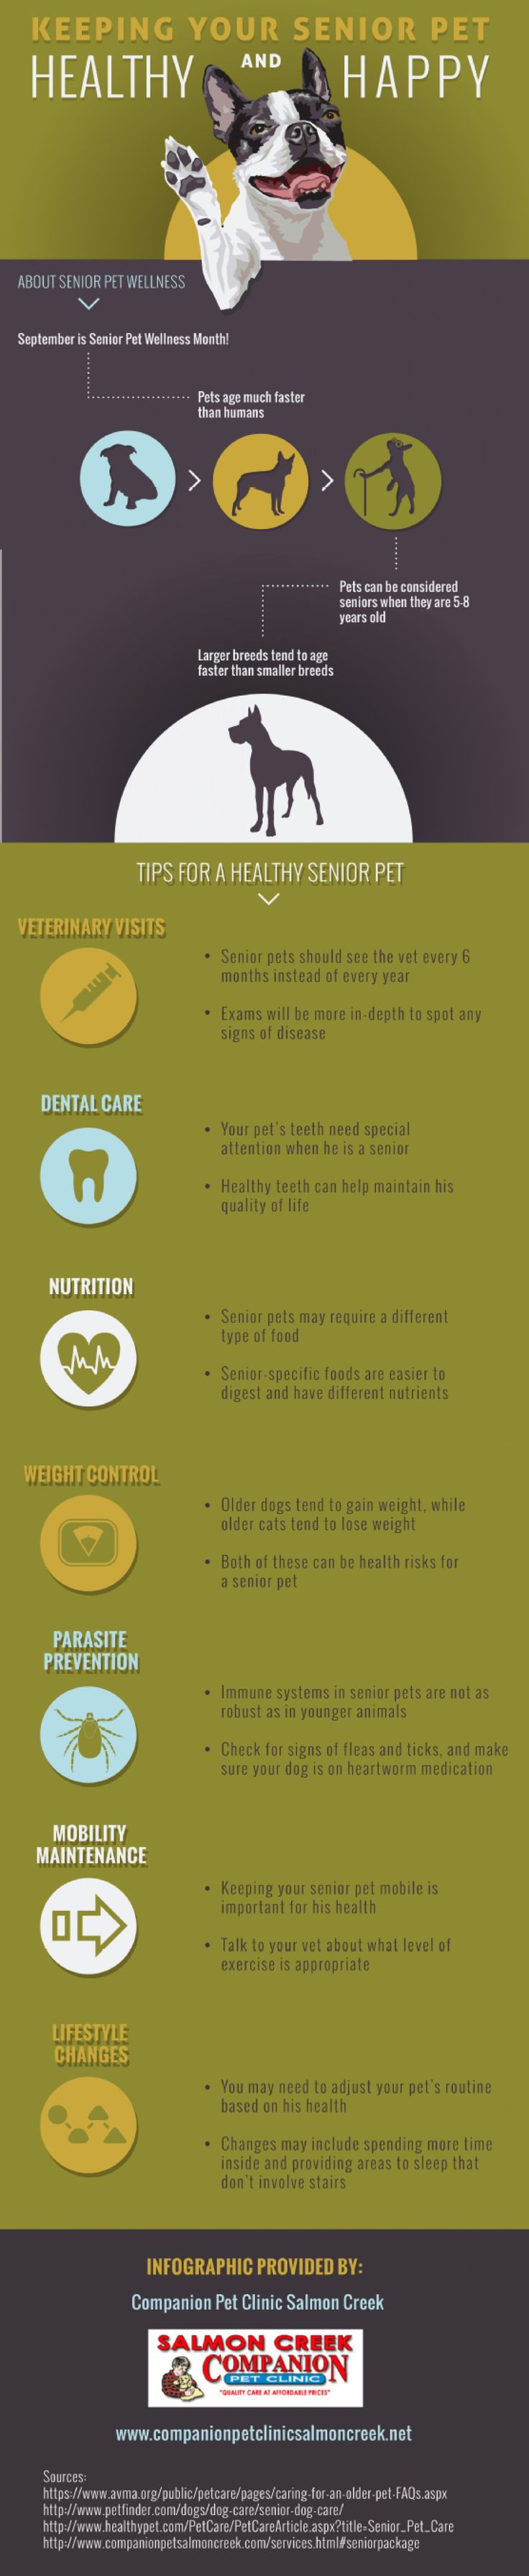 Keeping Your Senior Pet Healthy and Happy